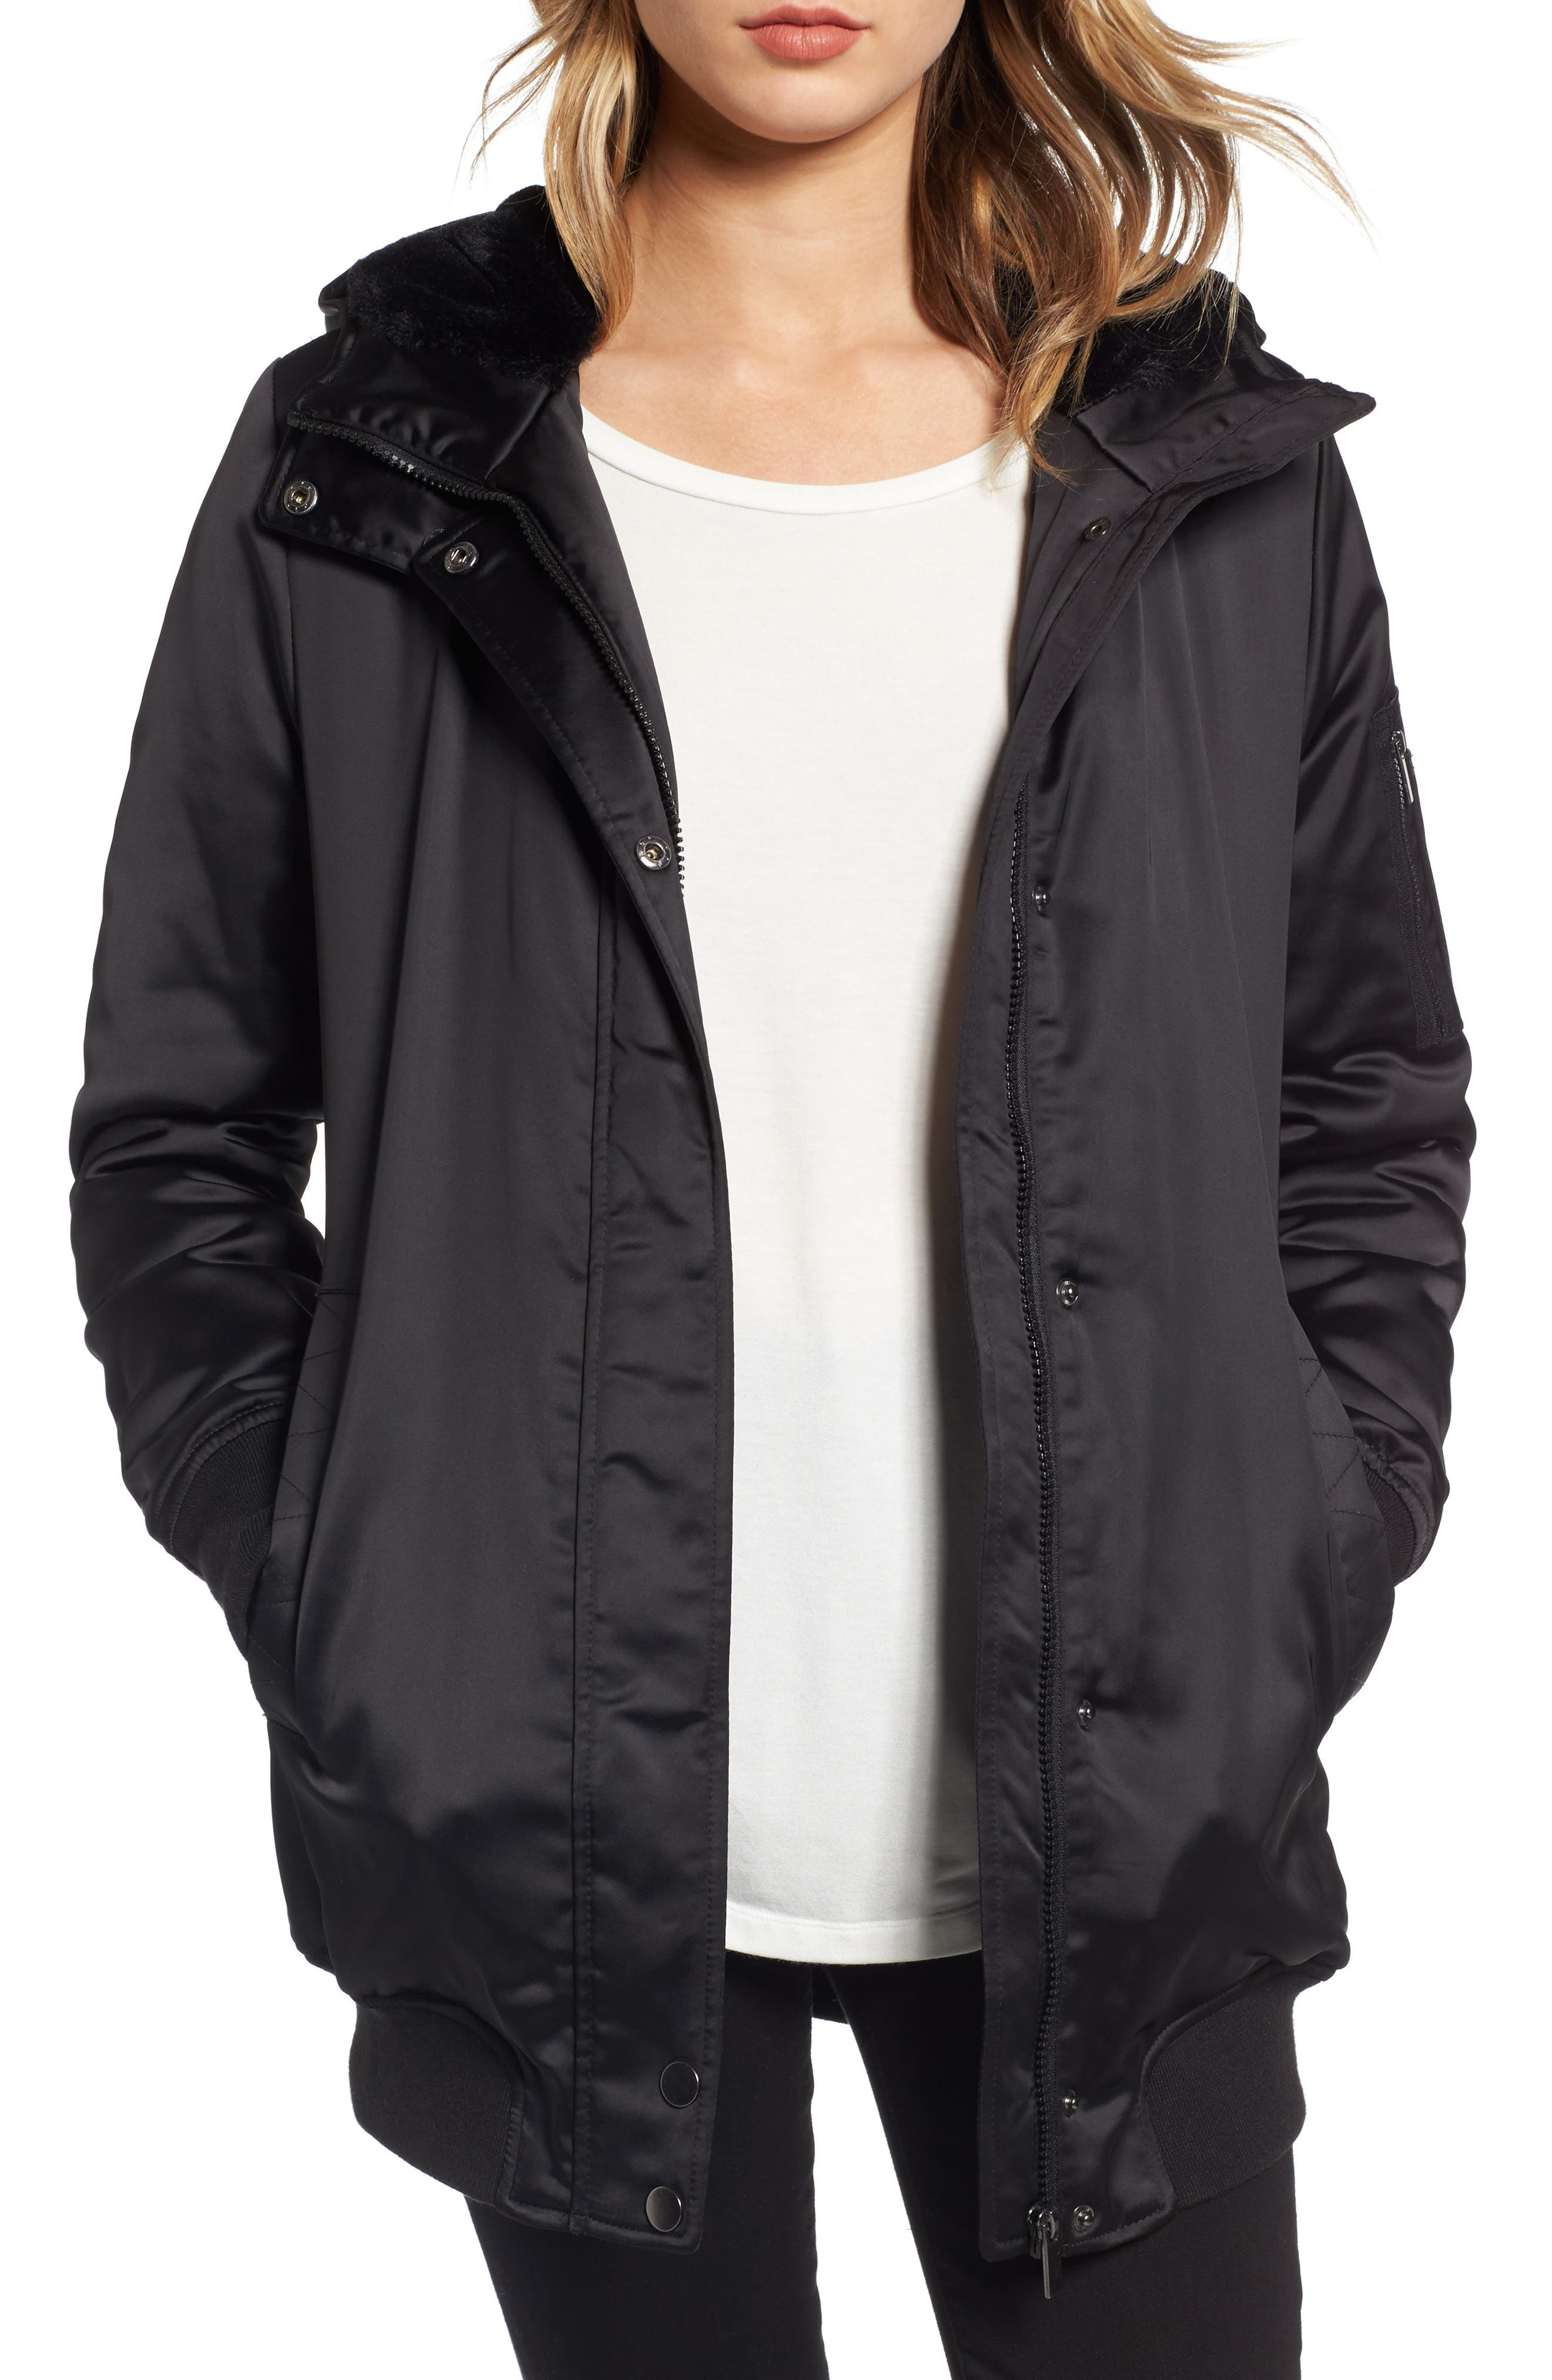 Main Image - Maralyn & Me Longline Hooded Bomber Jacket